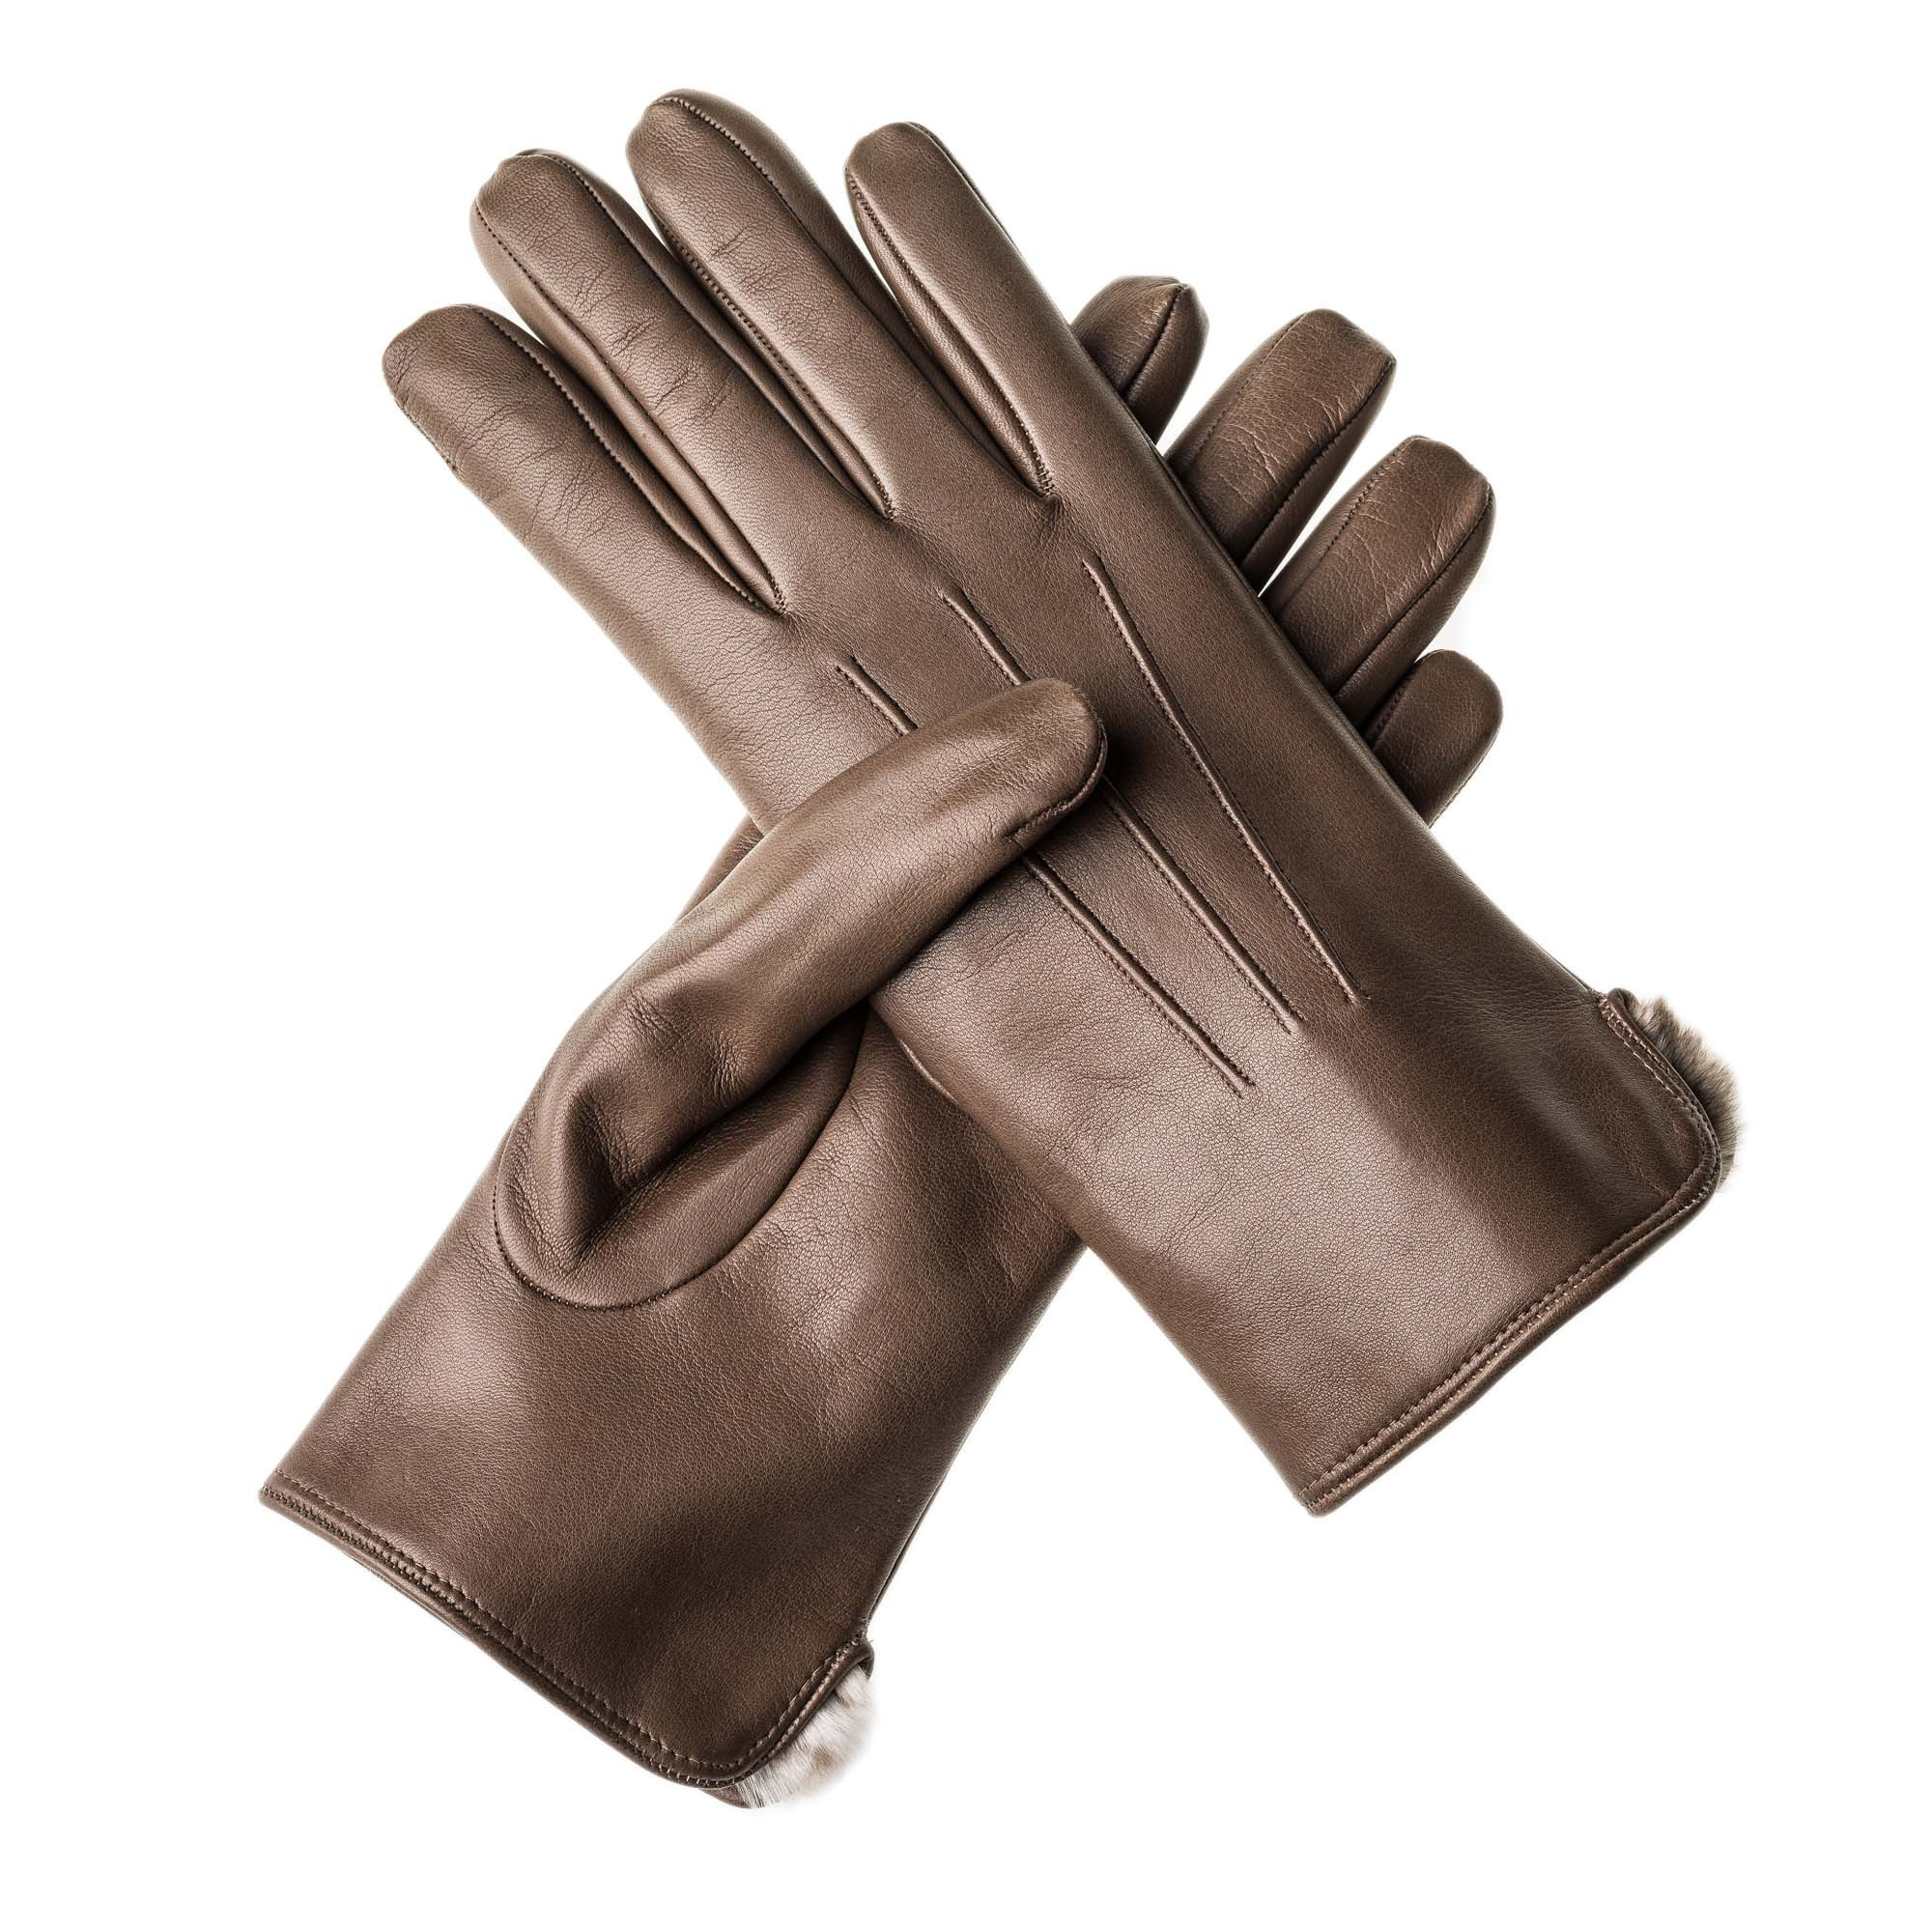 Ladies leather gloves large - Merola Ladies Leather Gloves With Rabbit Fur Lining